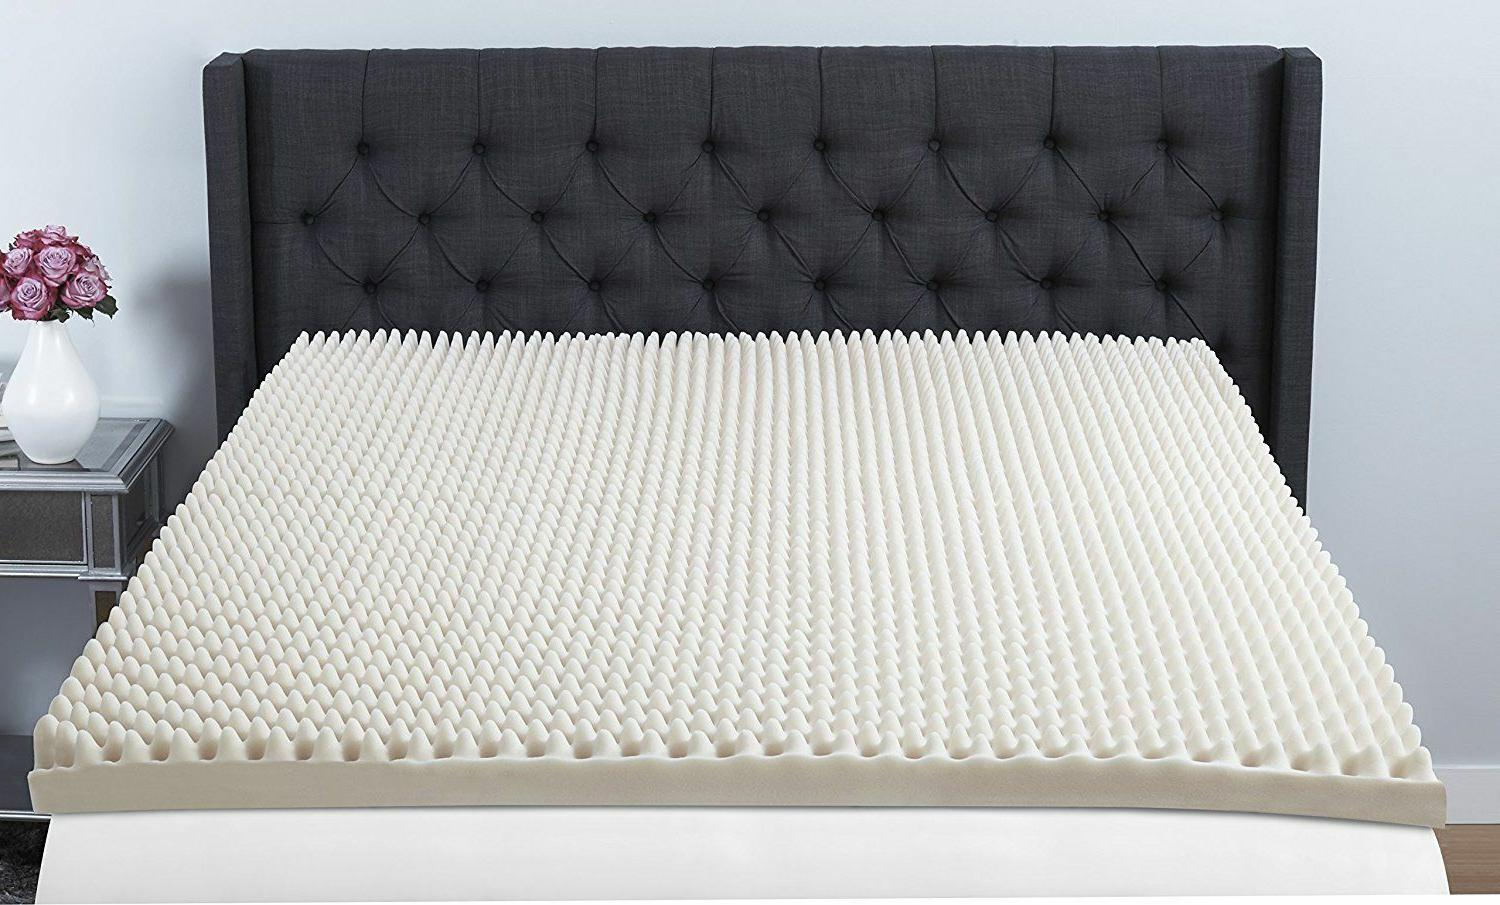 3 in. Bed Cover Egg Room Pad